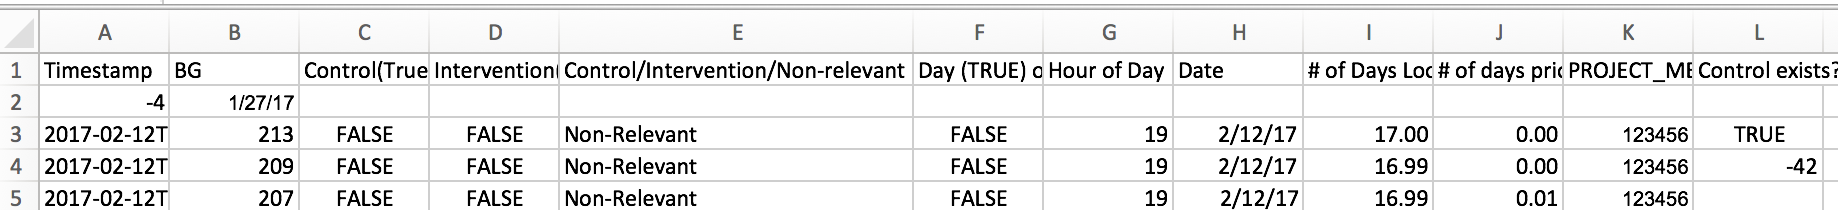 Example output file with mock data and formulas embedded for calculating these other fields